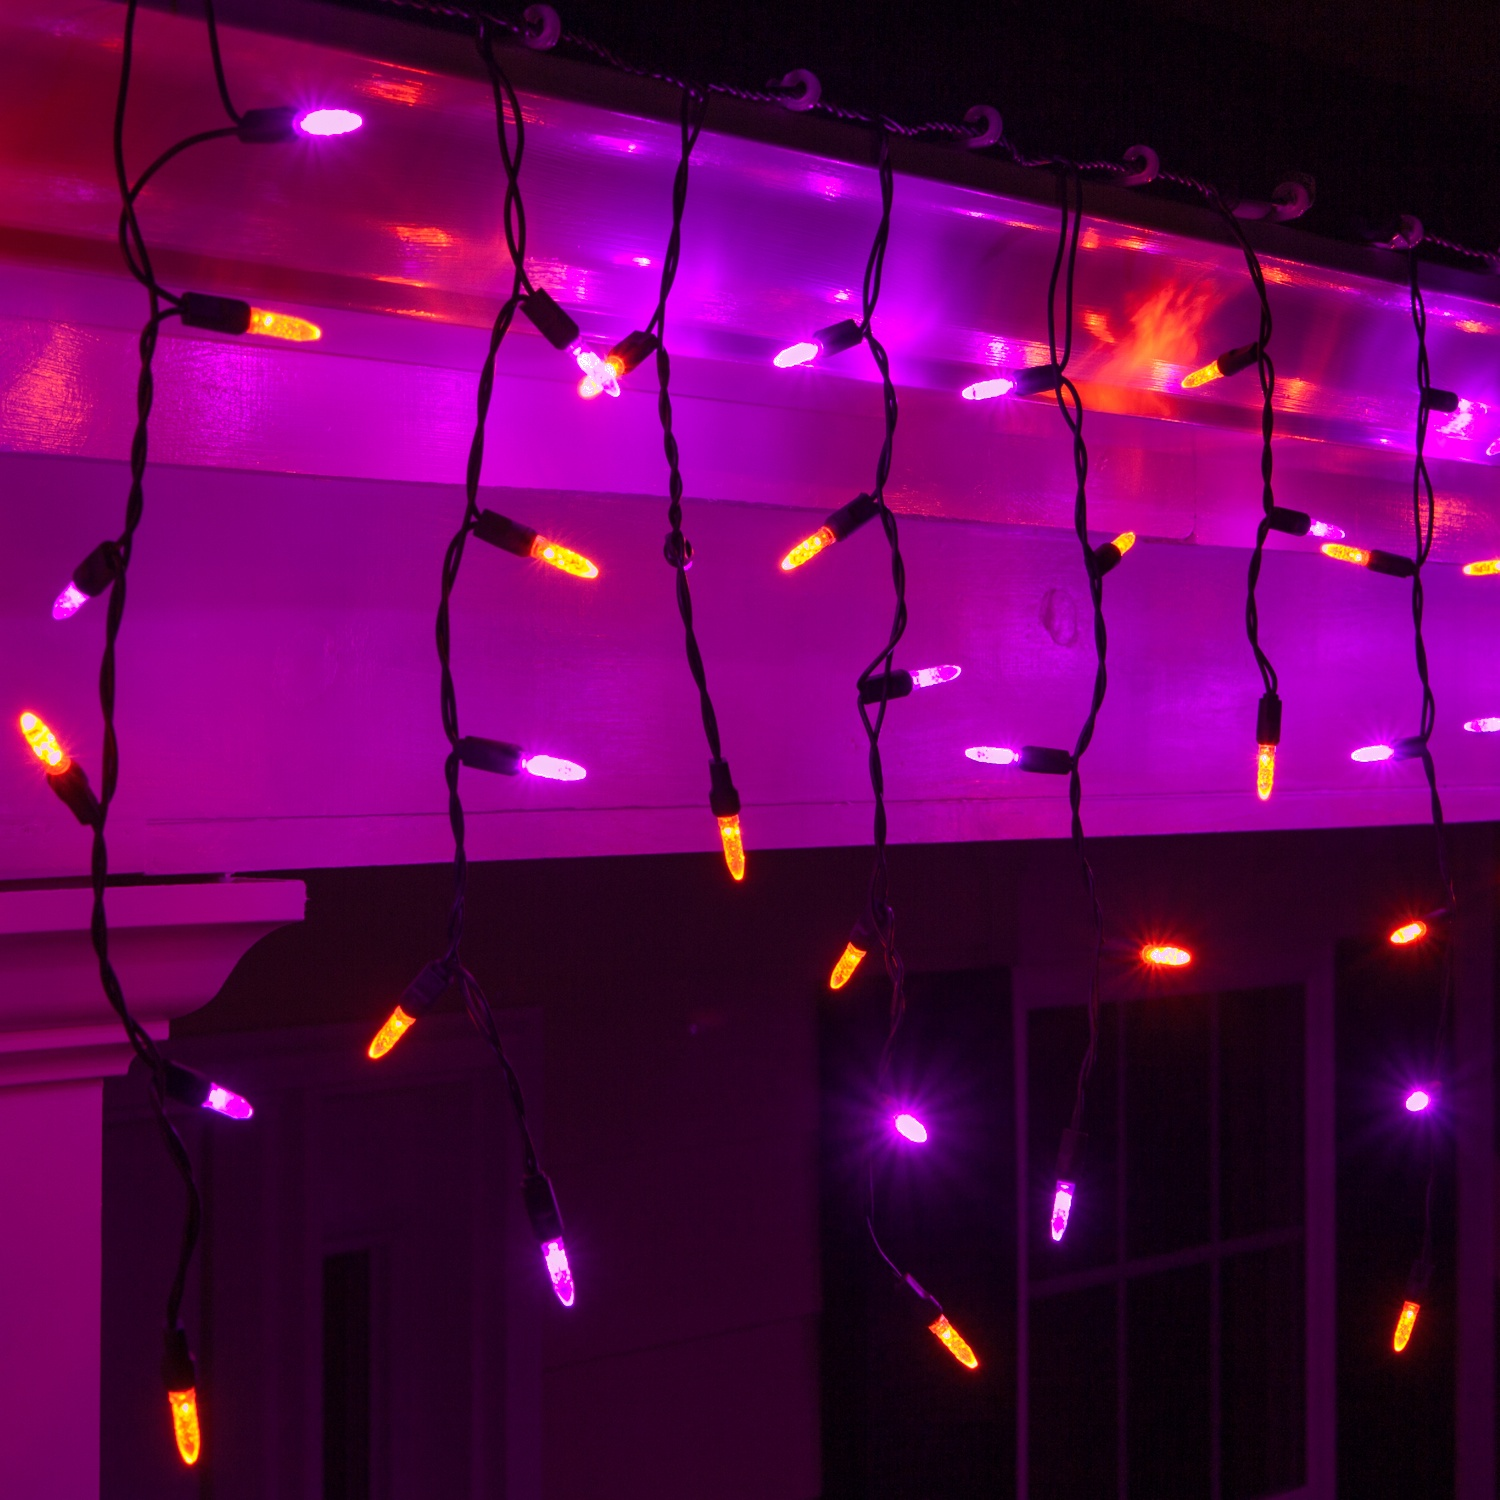 Led Halloween Lights 70 M5 Purple Orange Halloween Led Icicle Lights Black Wire